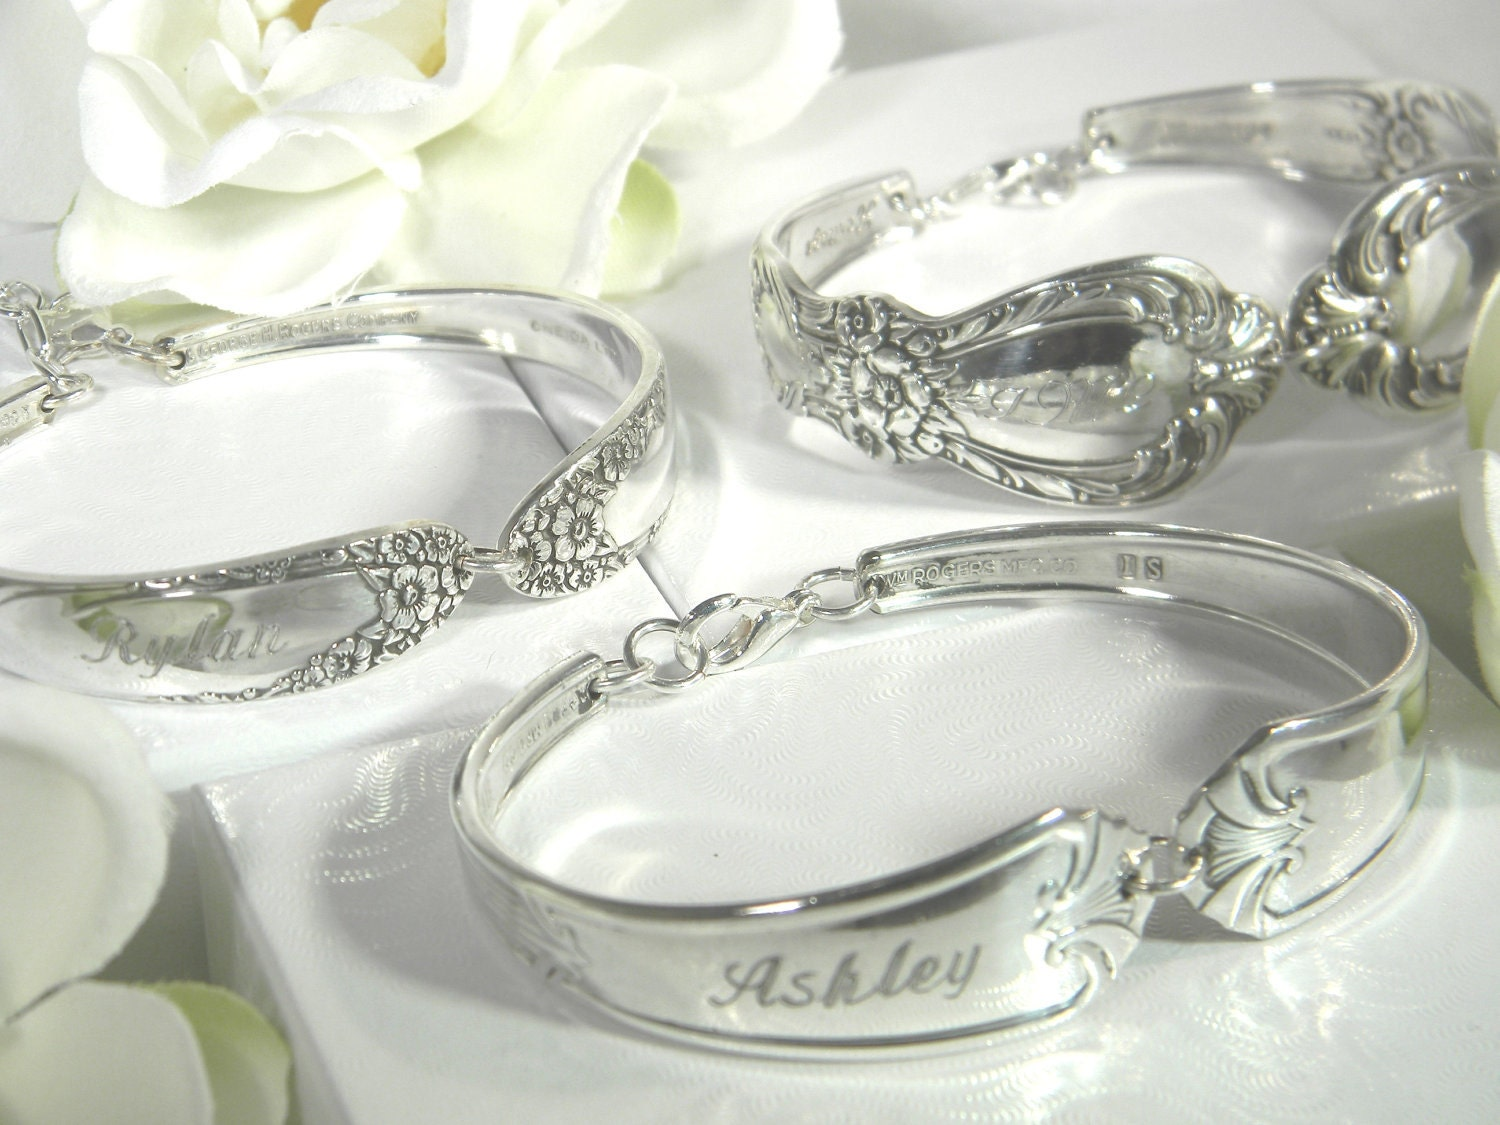 SIX (6) PERSONALIZED BRIDESMAIDS Silver Spoon Bracelets - 'You Choose Patterns - We Custom Engrave'  Multi Order Discount and Free Shipping